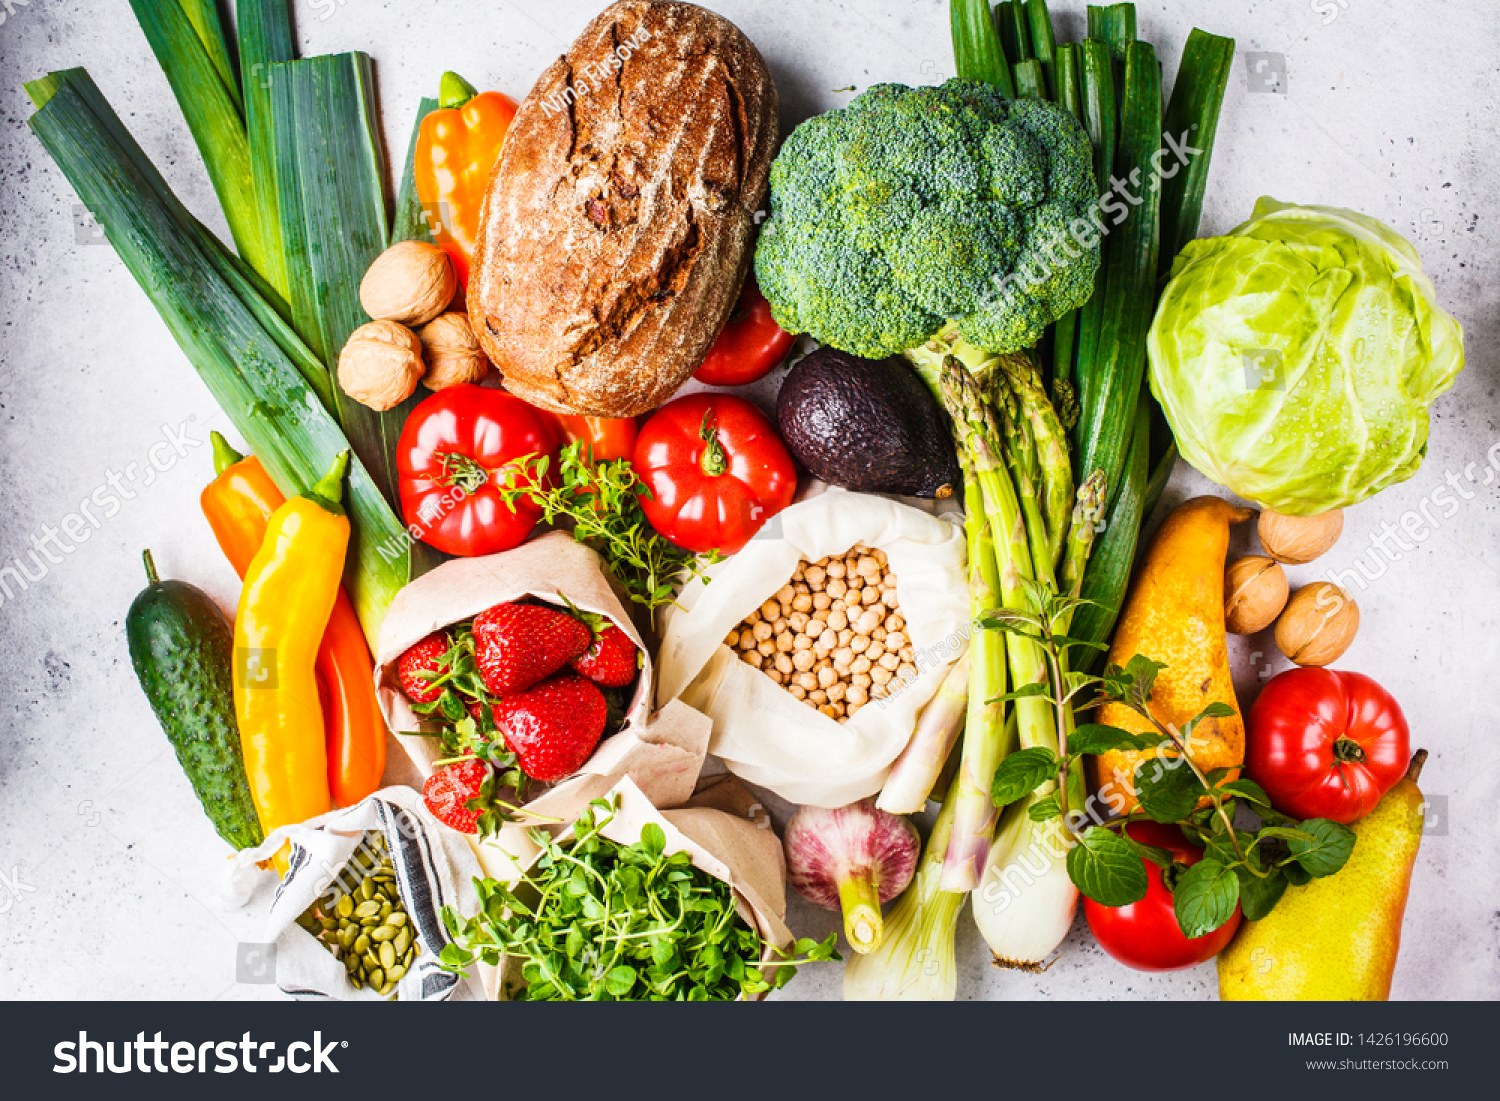 Balanced vegetarian food background. Vegetables, fruits, nuts, sprouts, seeds, chickpeas on a white background, top view. #1426196600